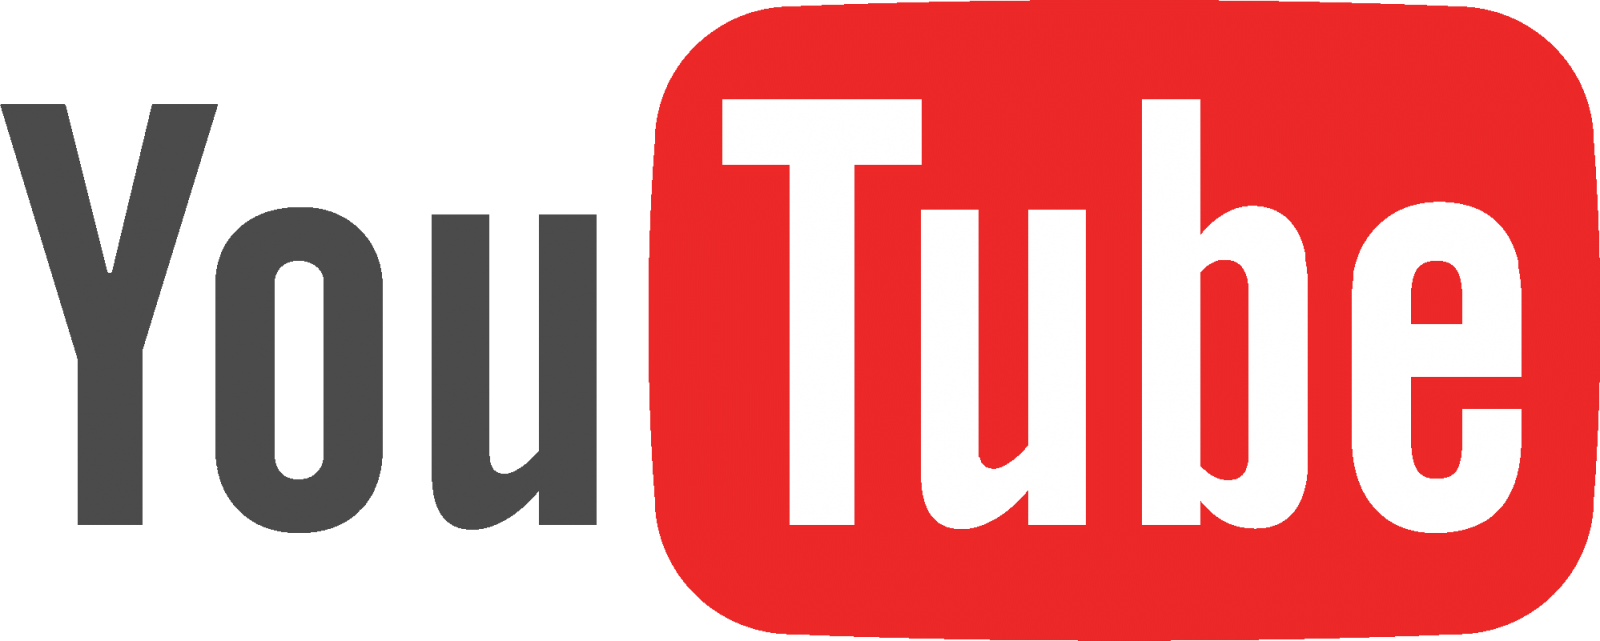 Imagen logo logopedia wiki. Youtube png graphic transparent library